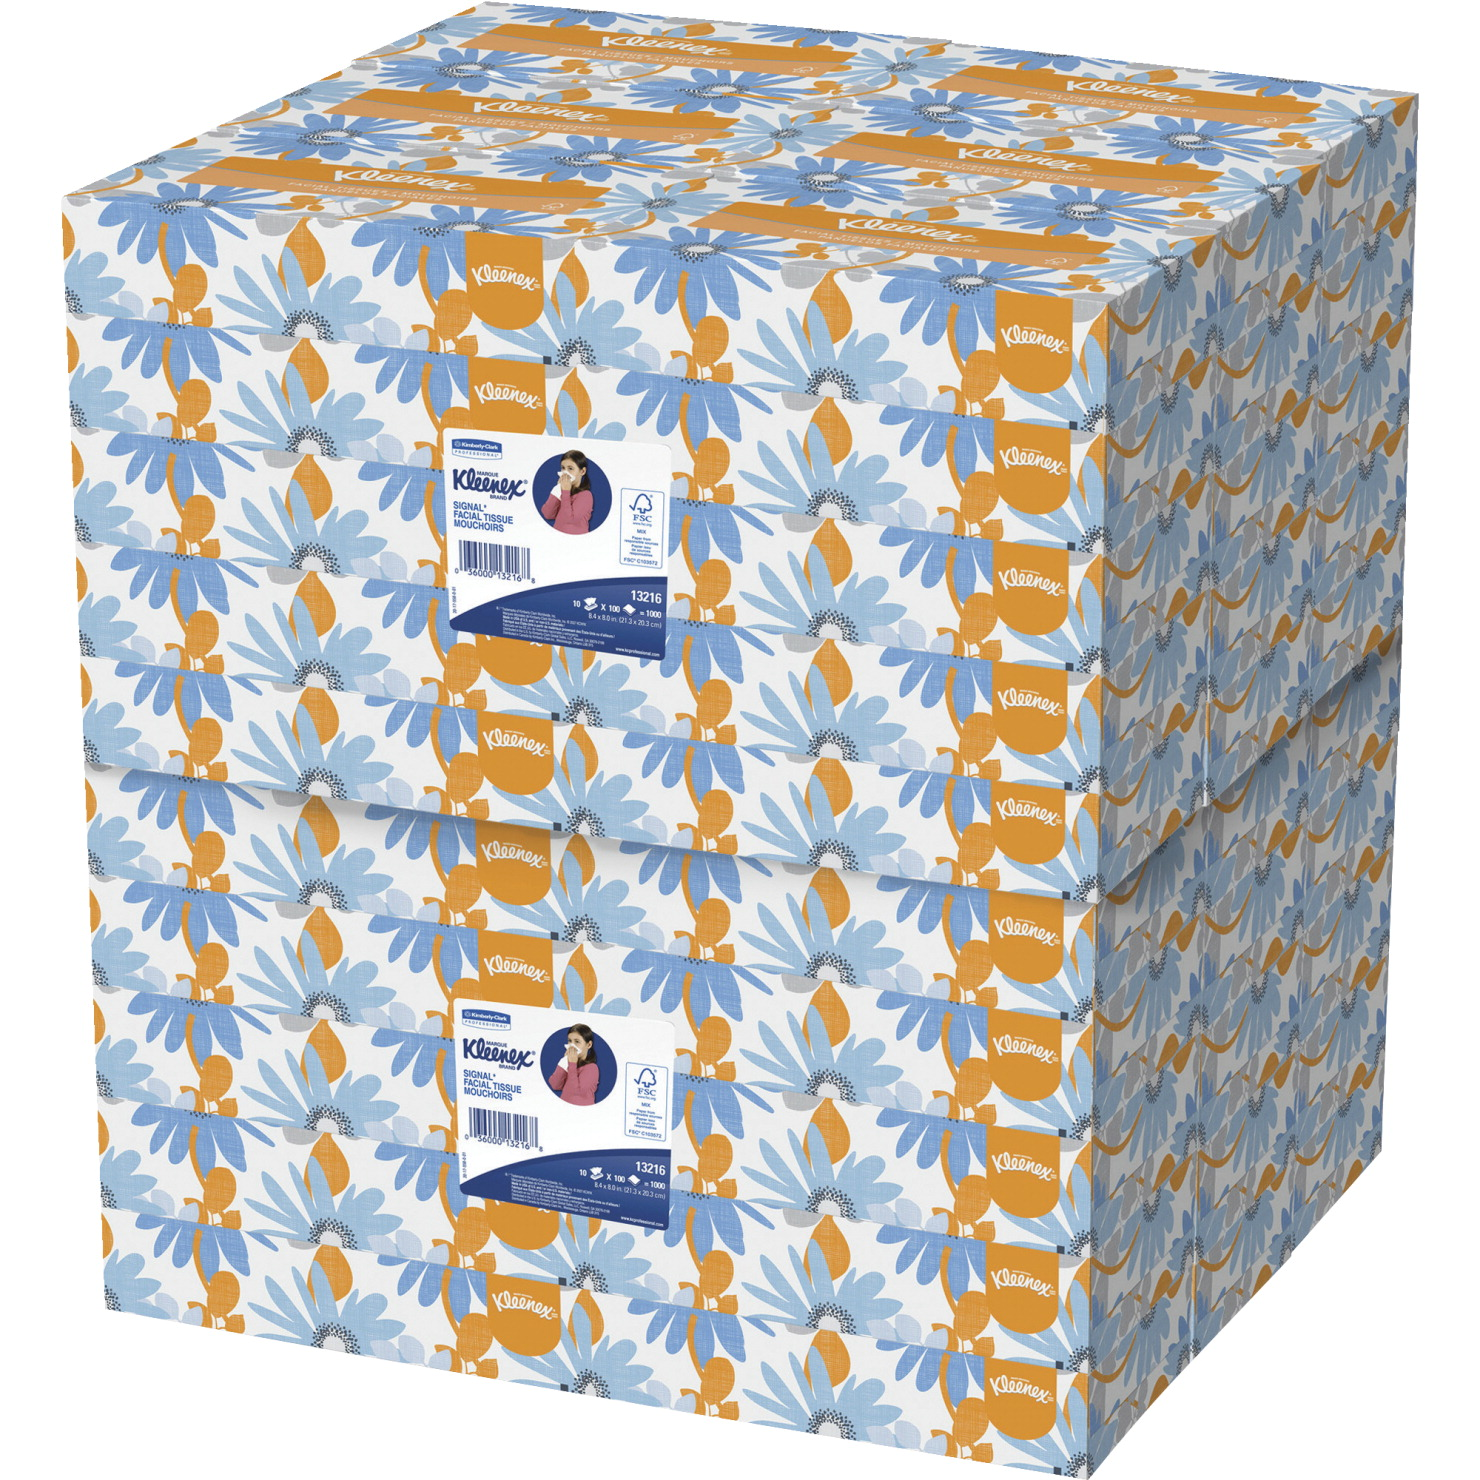 Kimberly Clark Facial Tissue Conven Case, 2-Ply, Pack of 60 Boxes, White